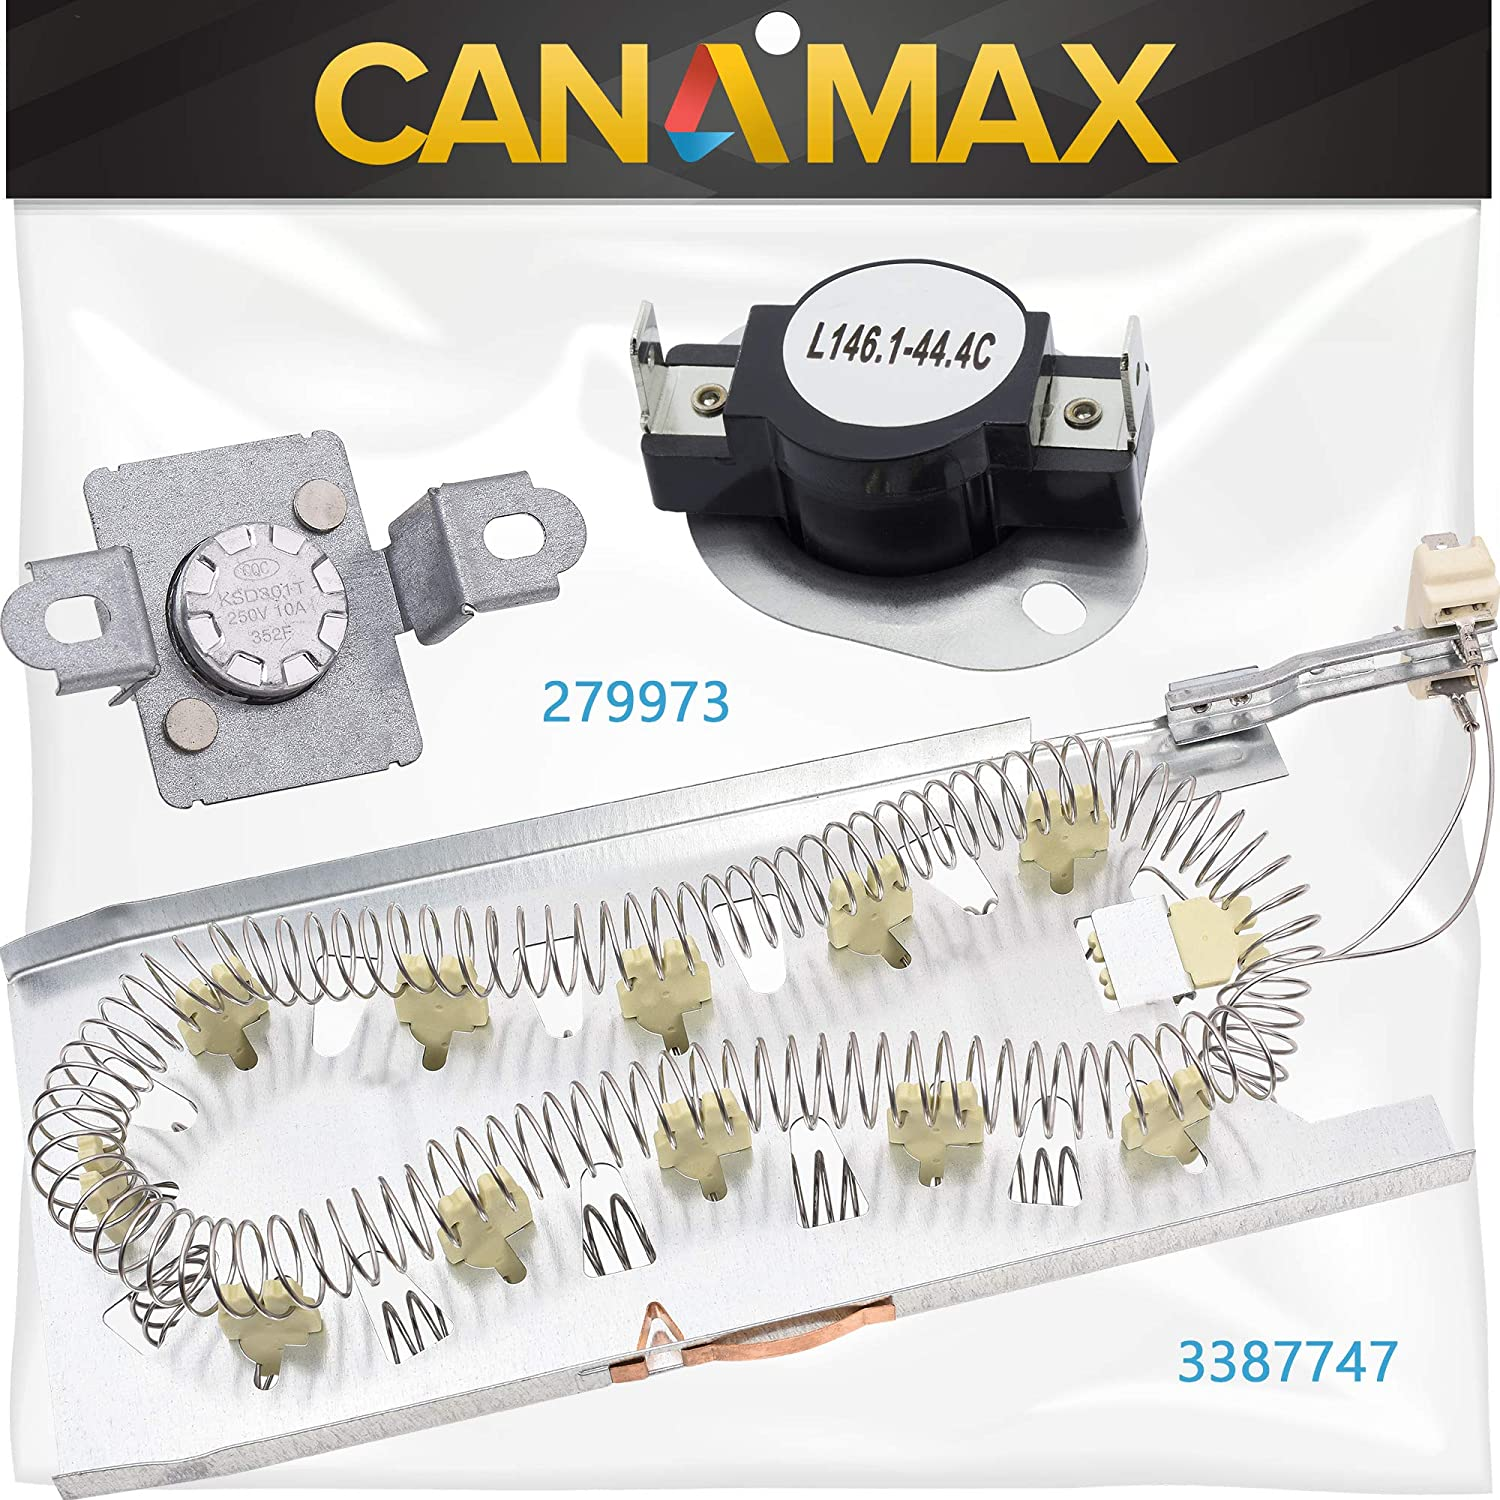 NEW 3387747 & 279973 Dryer Heating Element with Dryer Thermal Cut-off Fuse Kit Premium Replacement by Canamax - Compatible with Whirlpool Kenmore Dryers